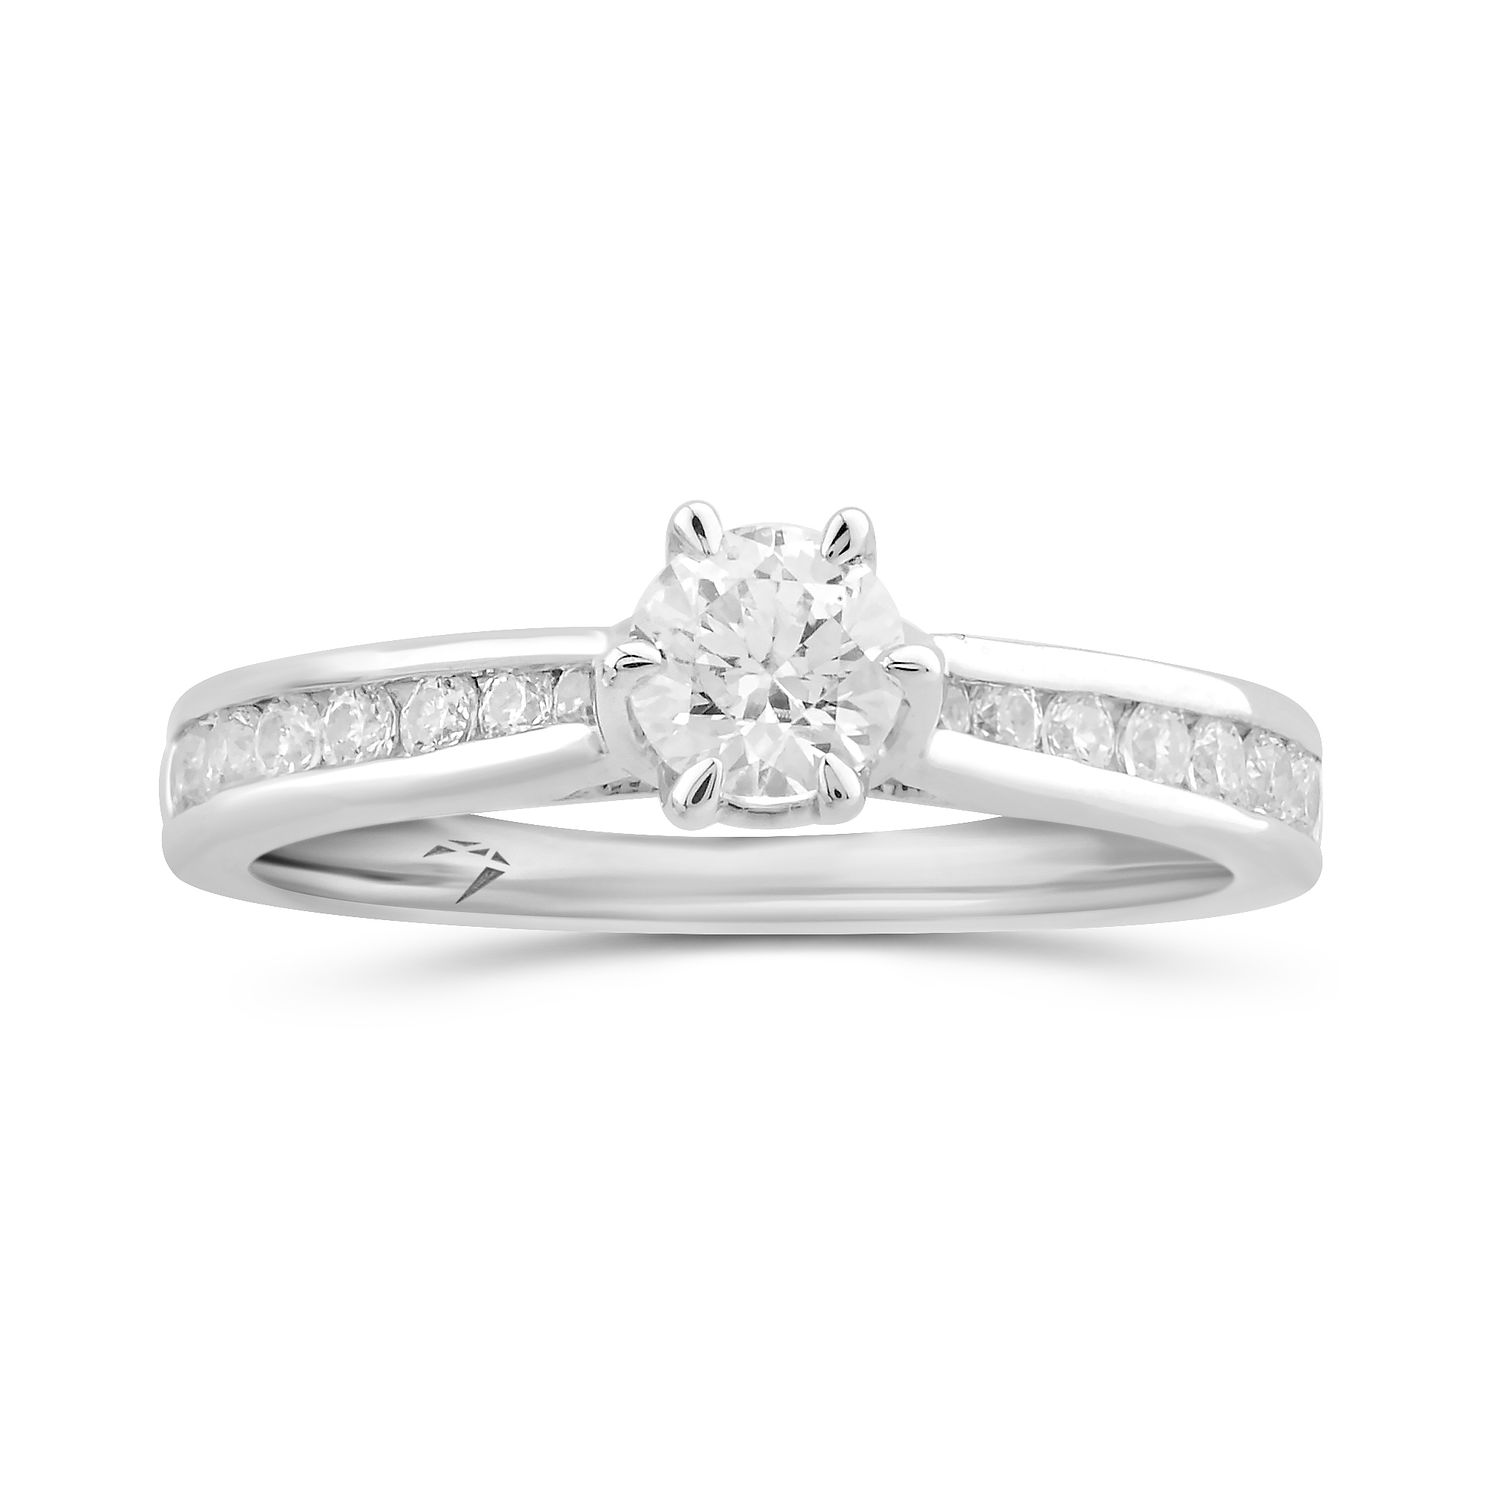 Arctic Light Platinum 0.75ct Total Diamond Solitaire Ring - Product number 5289793